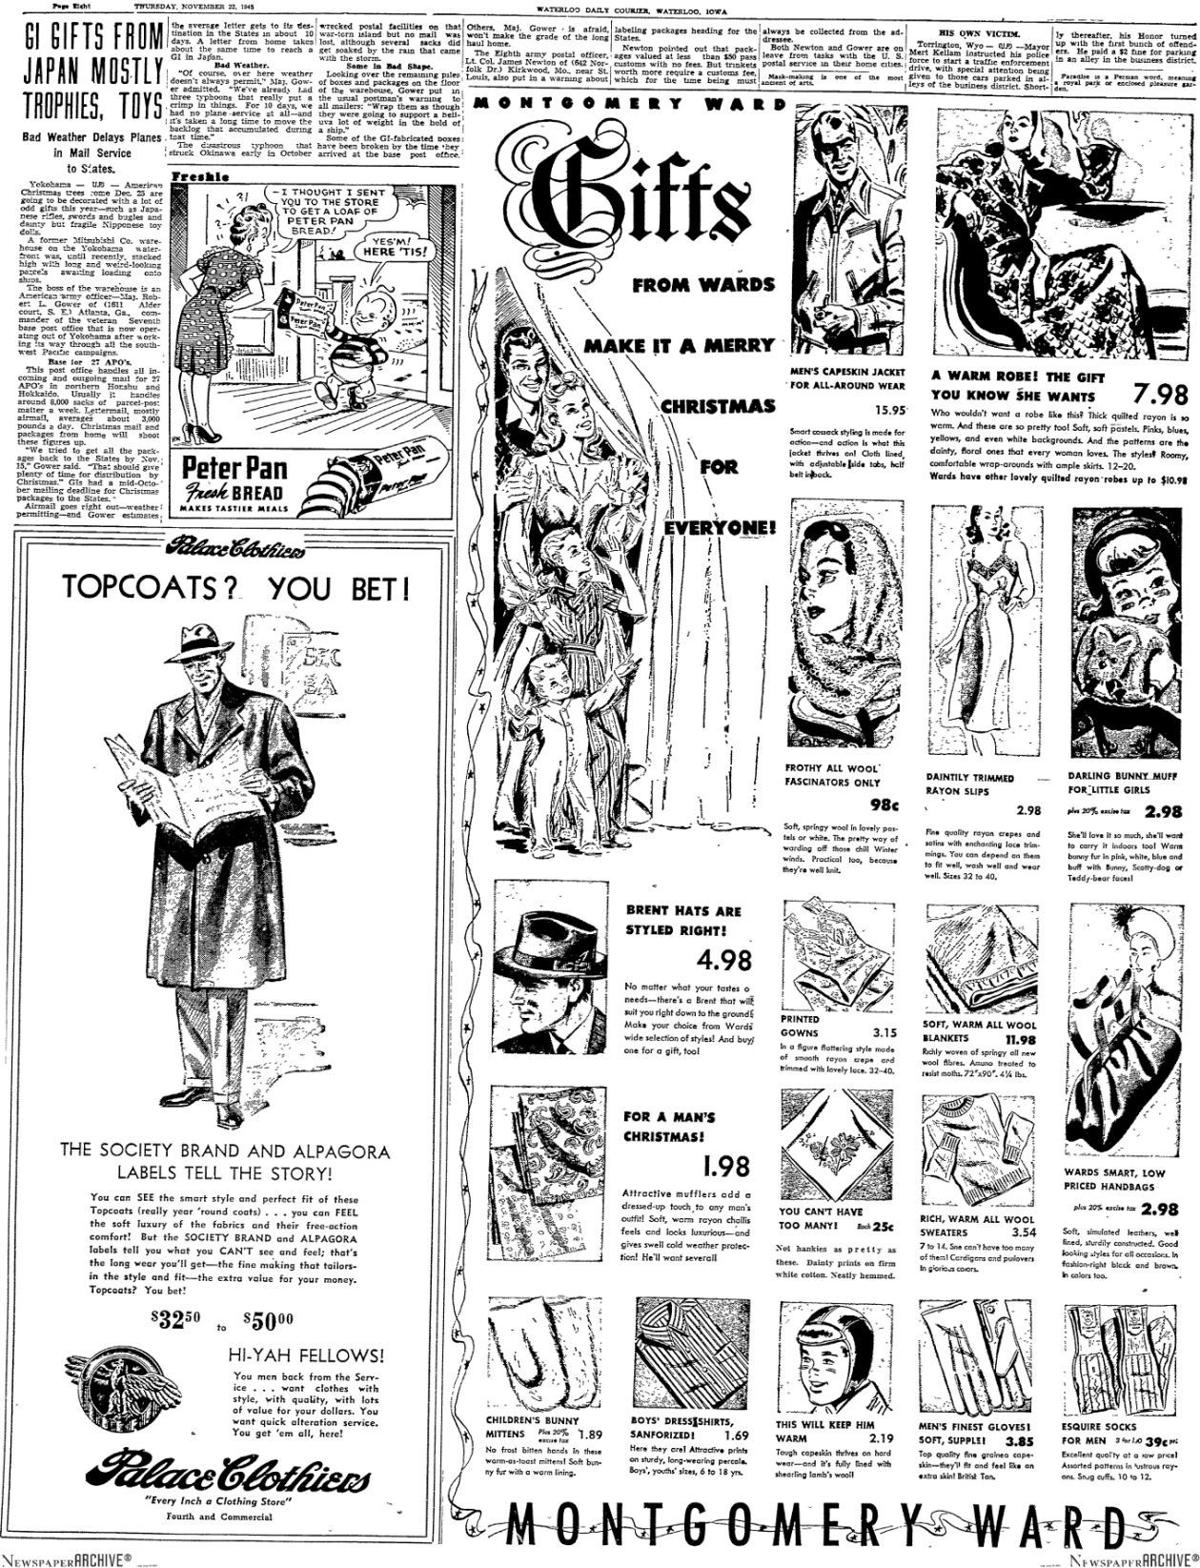 Courier holiday ads throughout the years | Lifestyles | wcfcourier.com